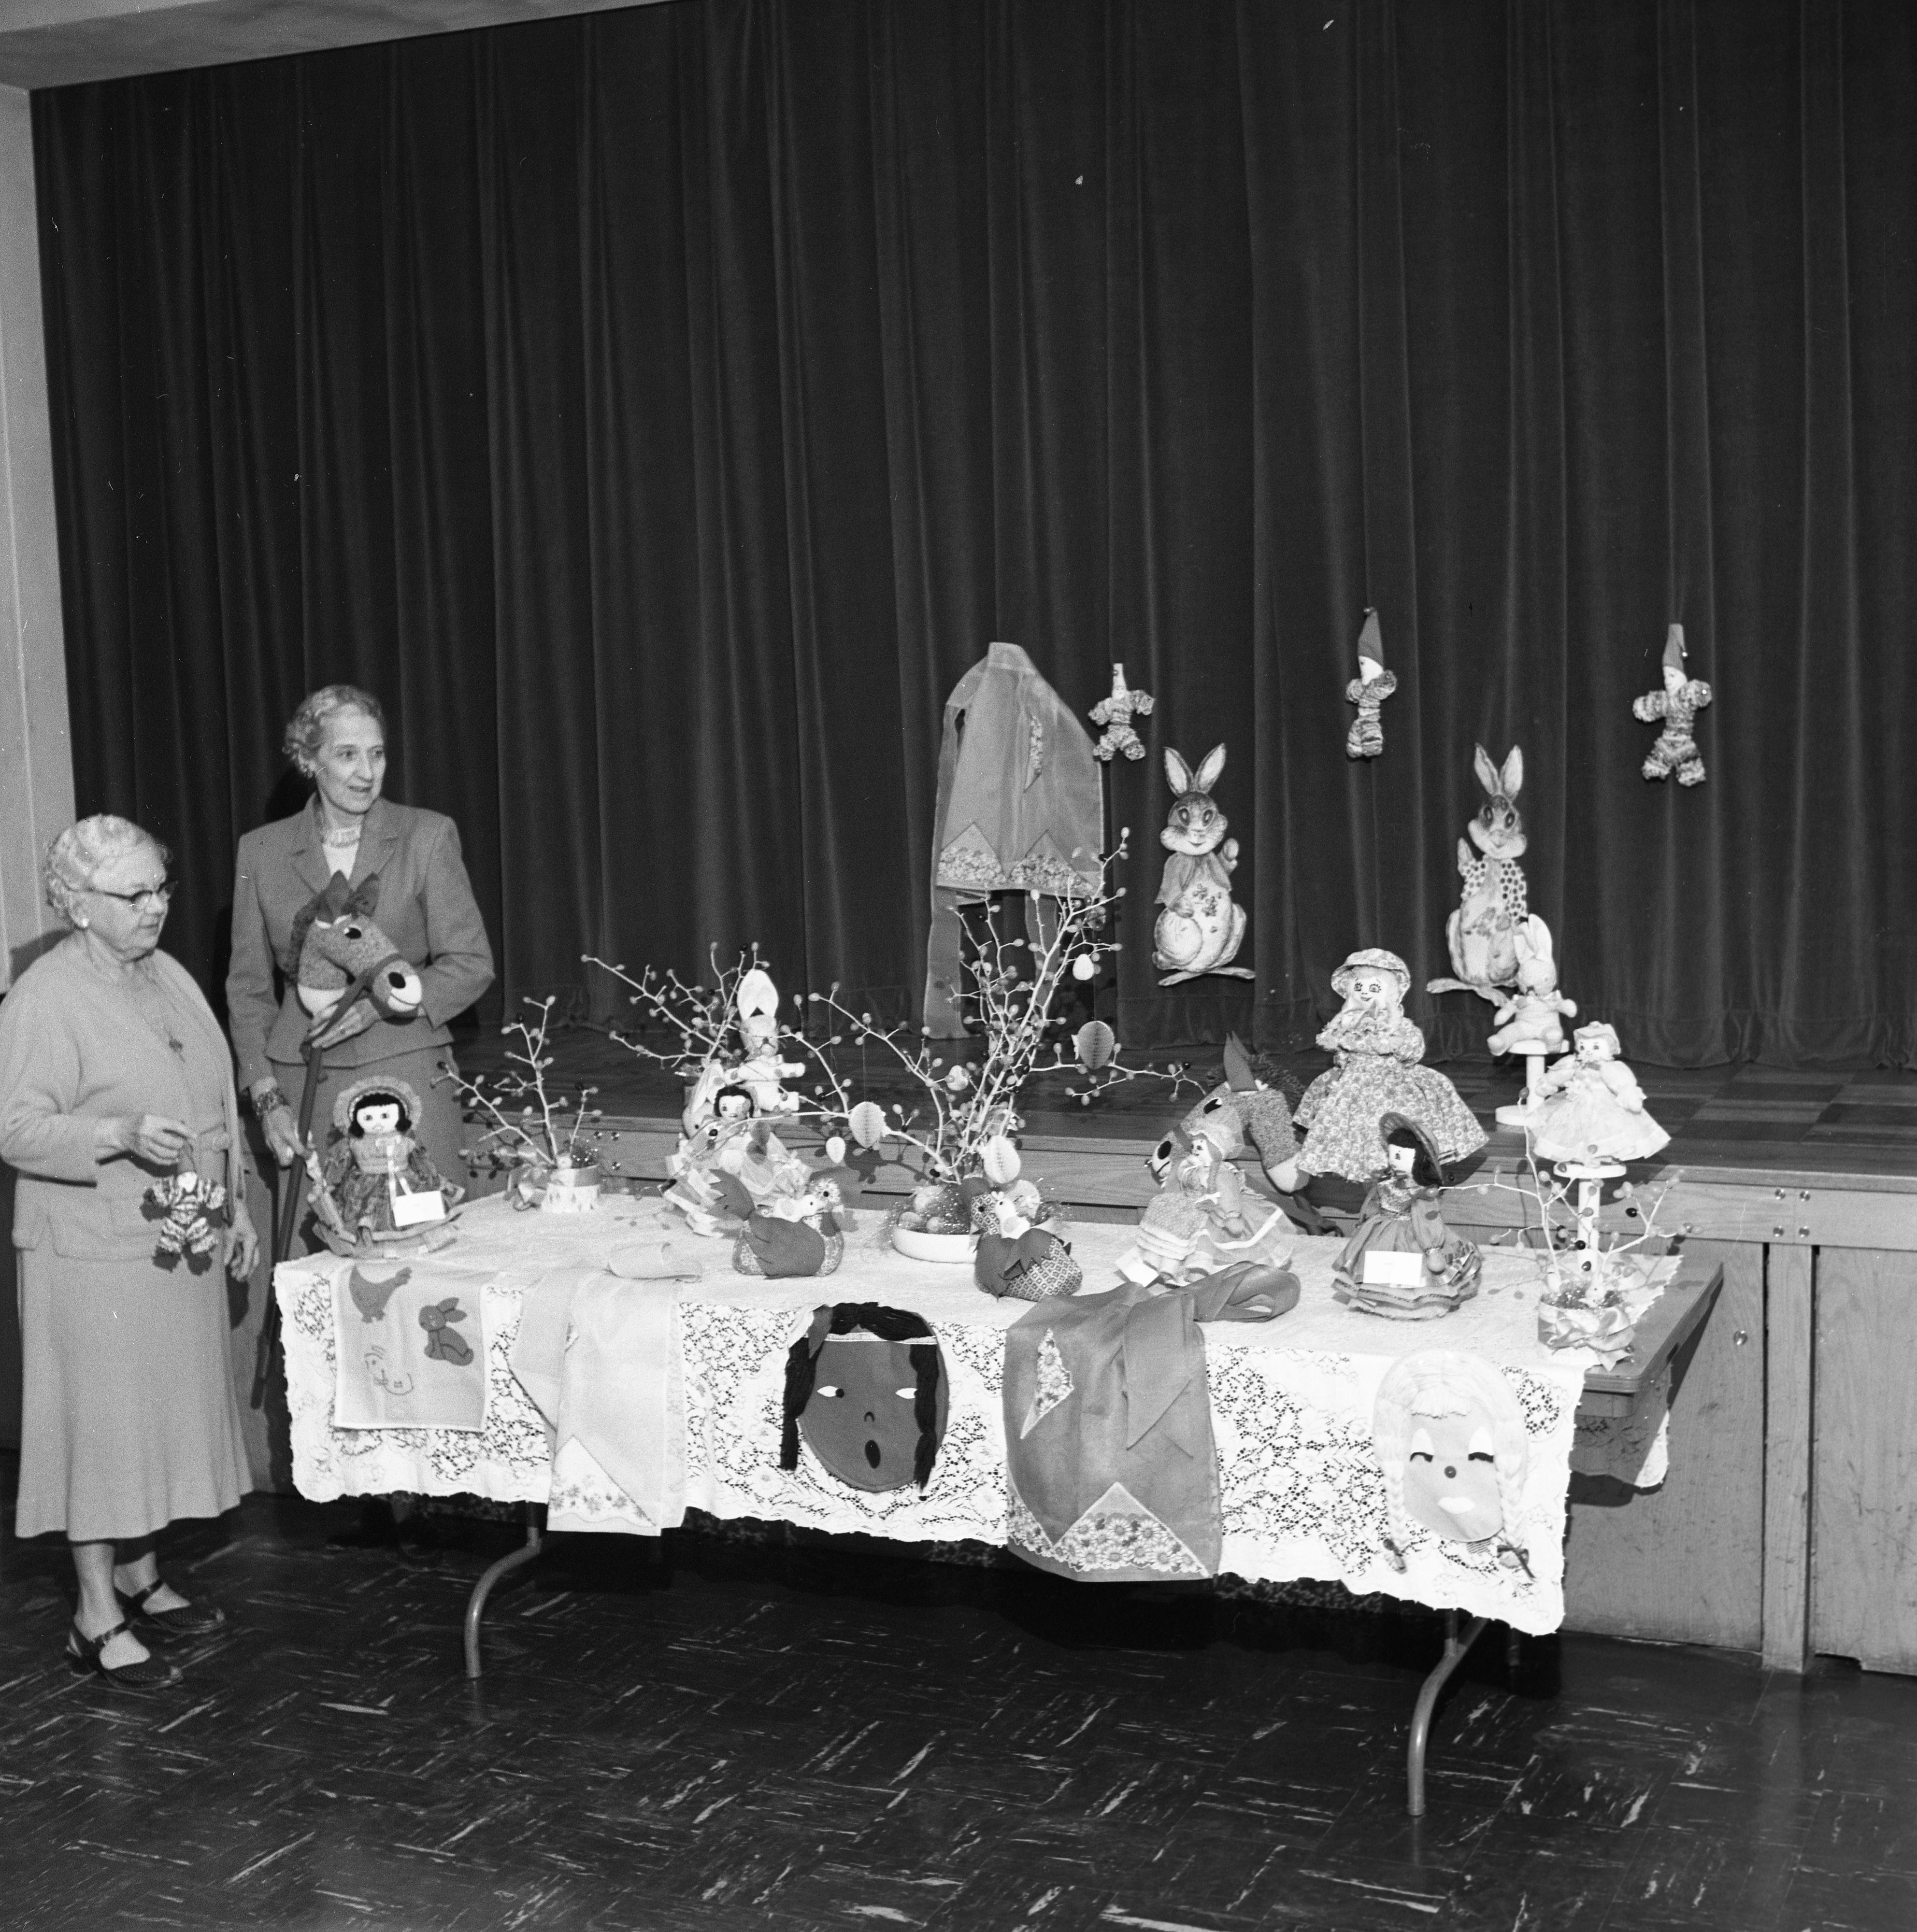 St. Andrew's Episcopal Church Easter Market Gift Items, March 1961 image